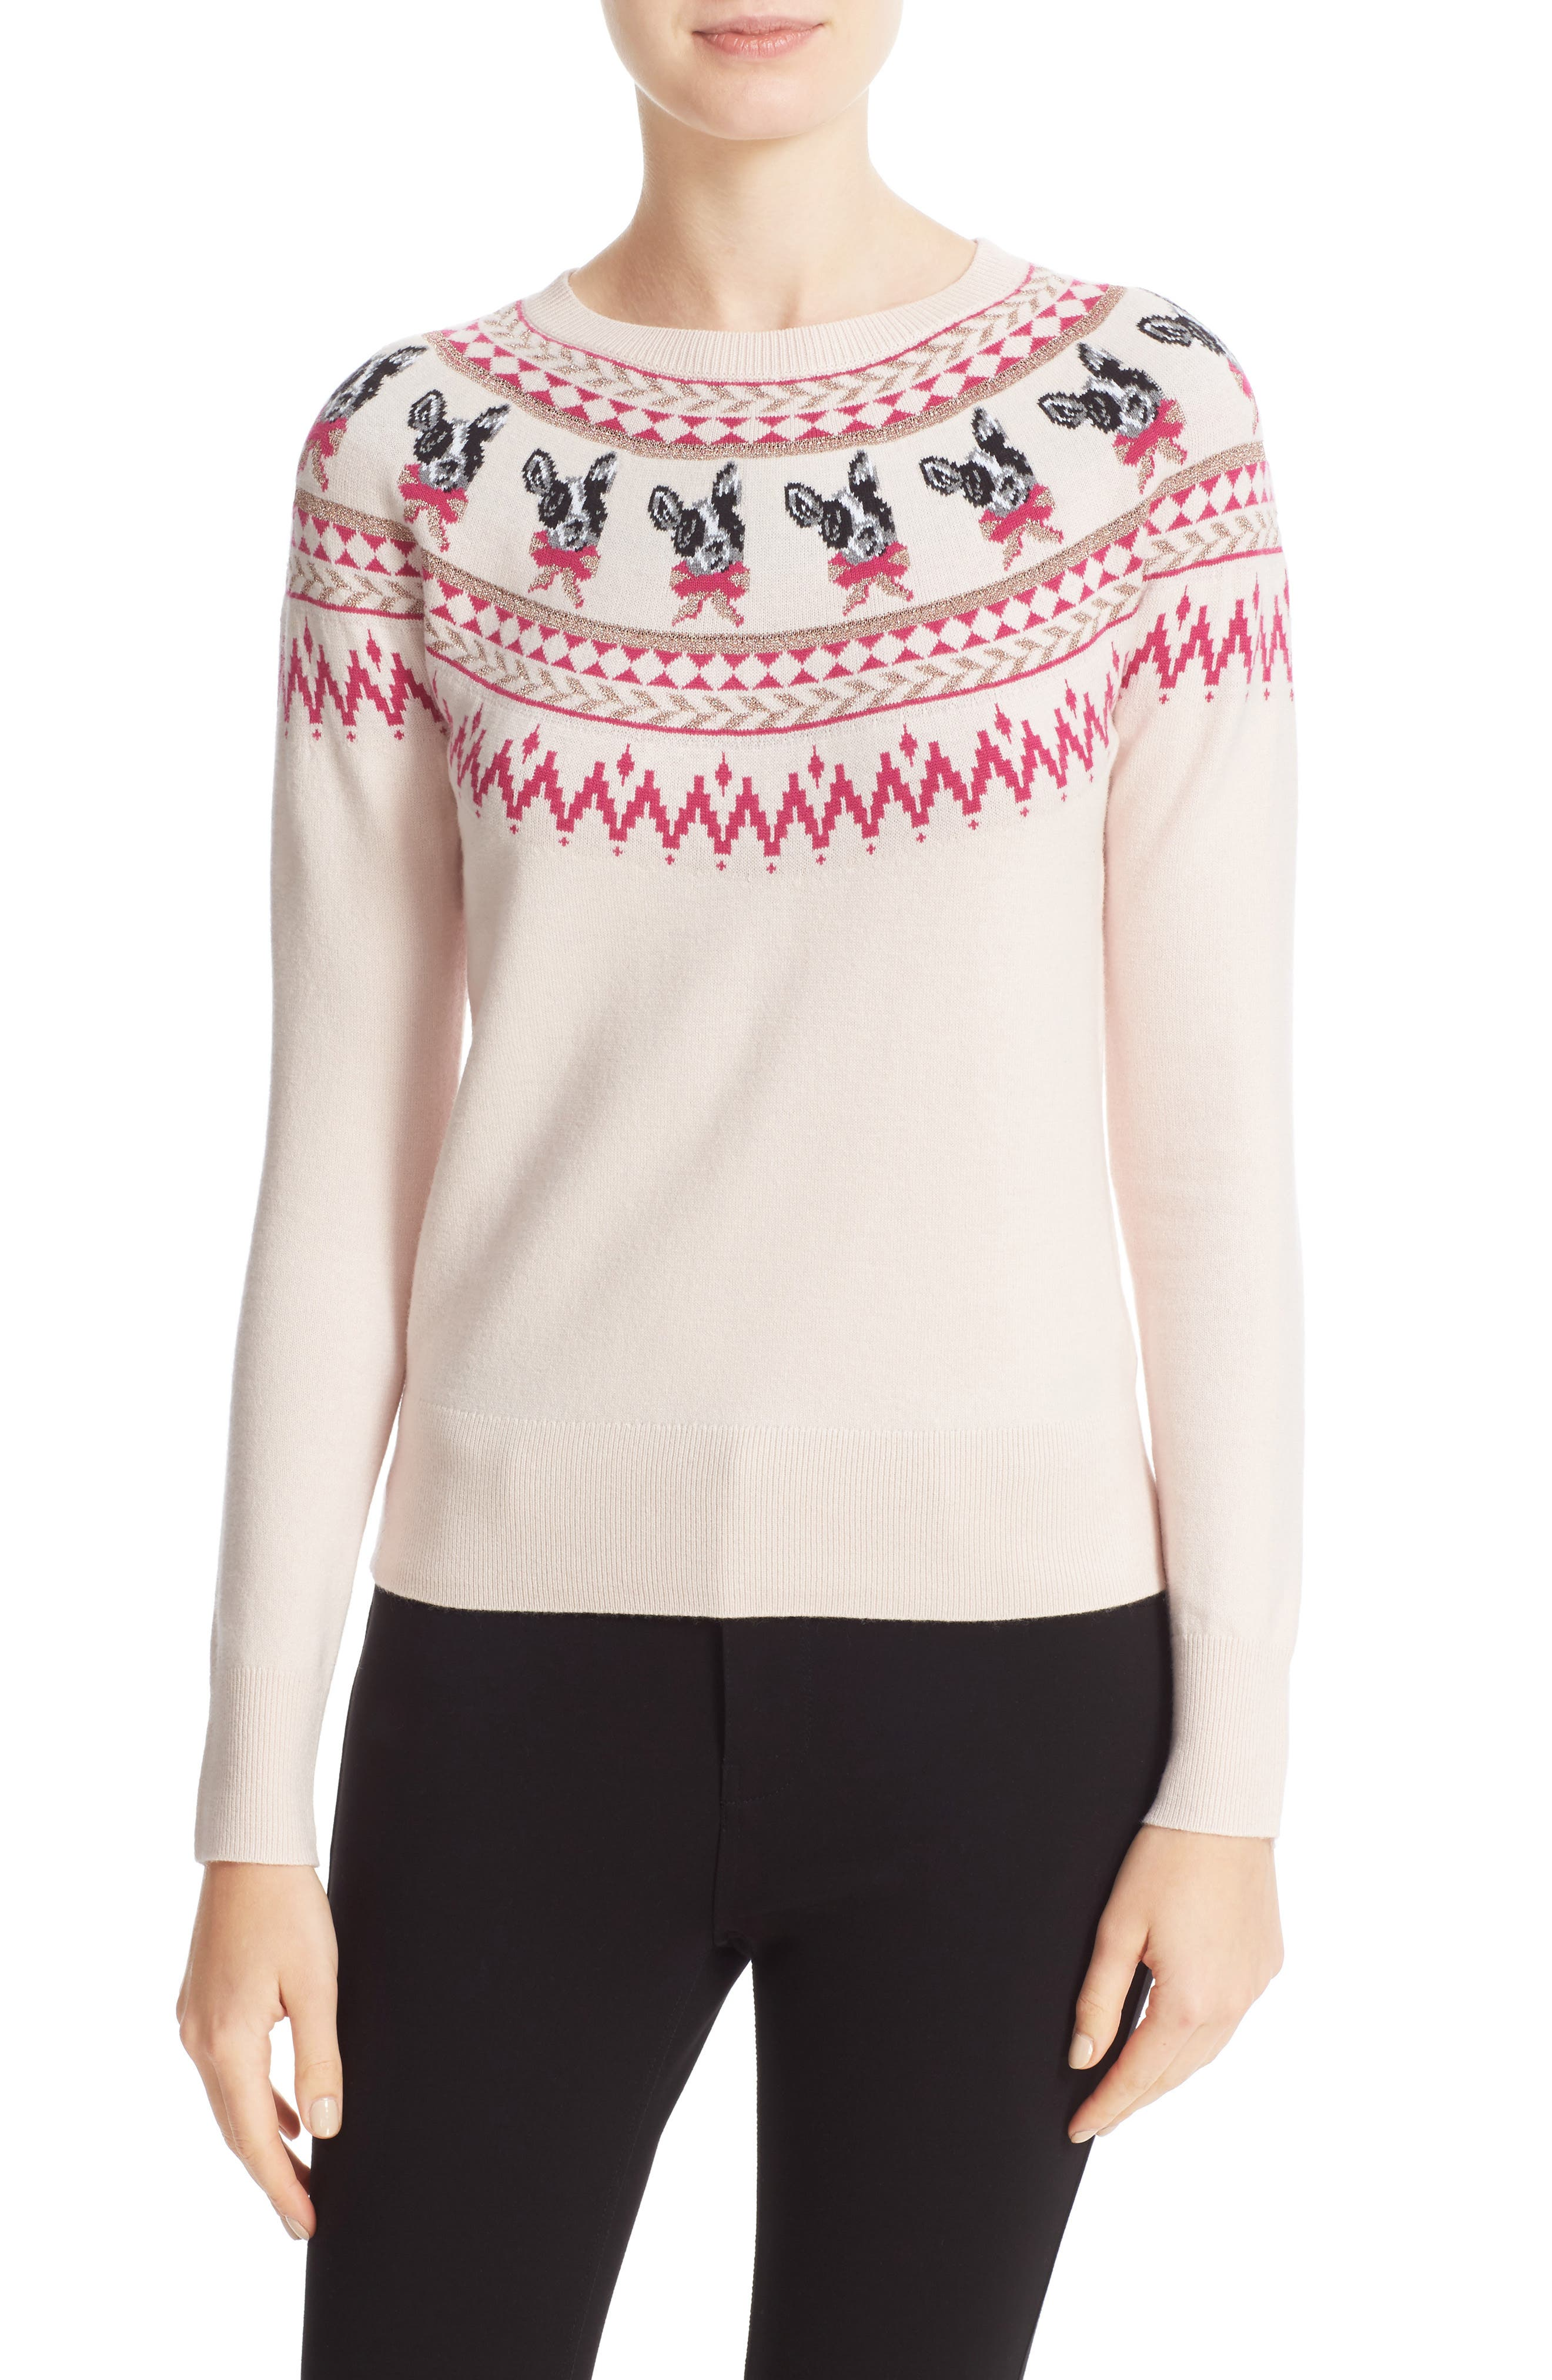 TED BAKER LONDON Merry Woofmas Fair Isle Pullover, Main, color, 272